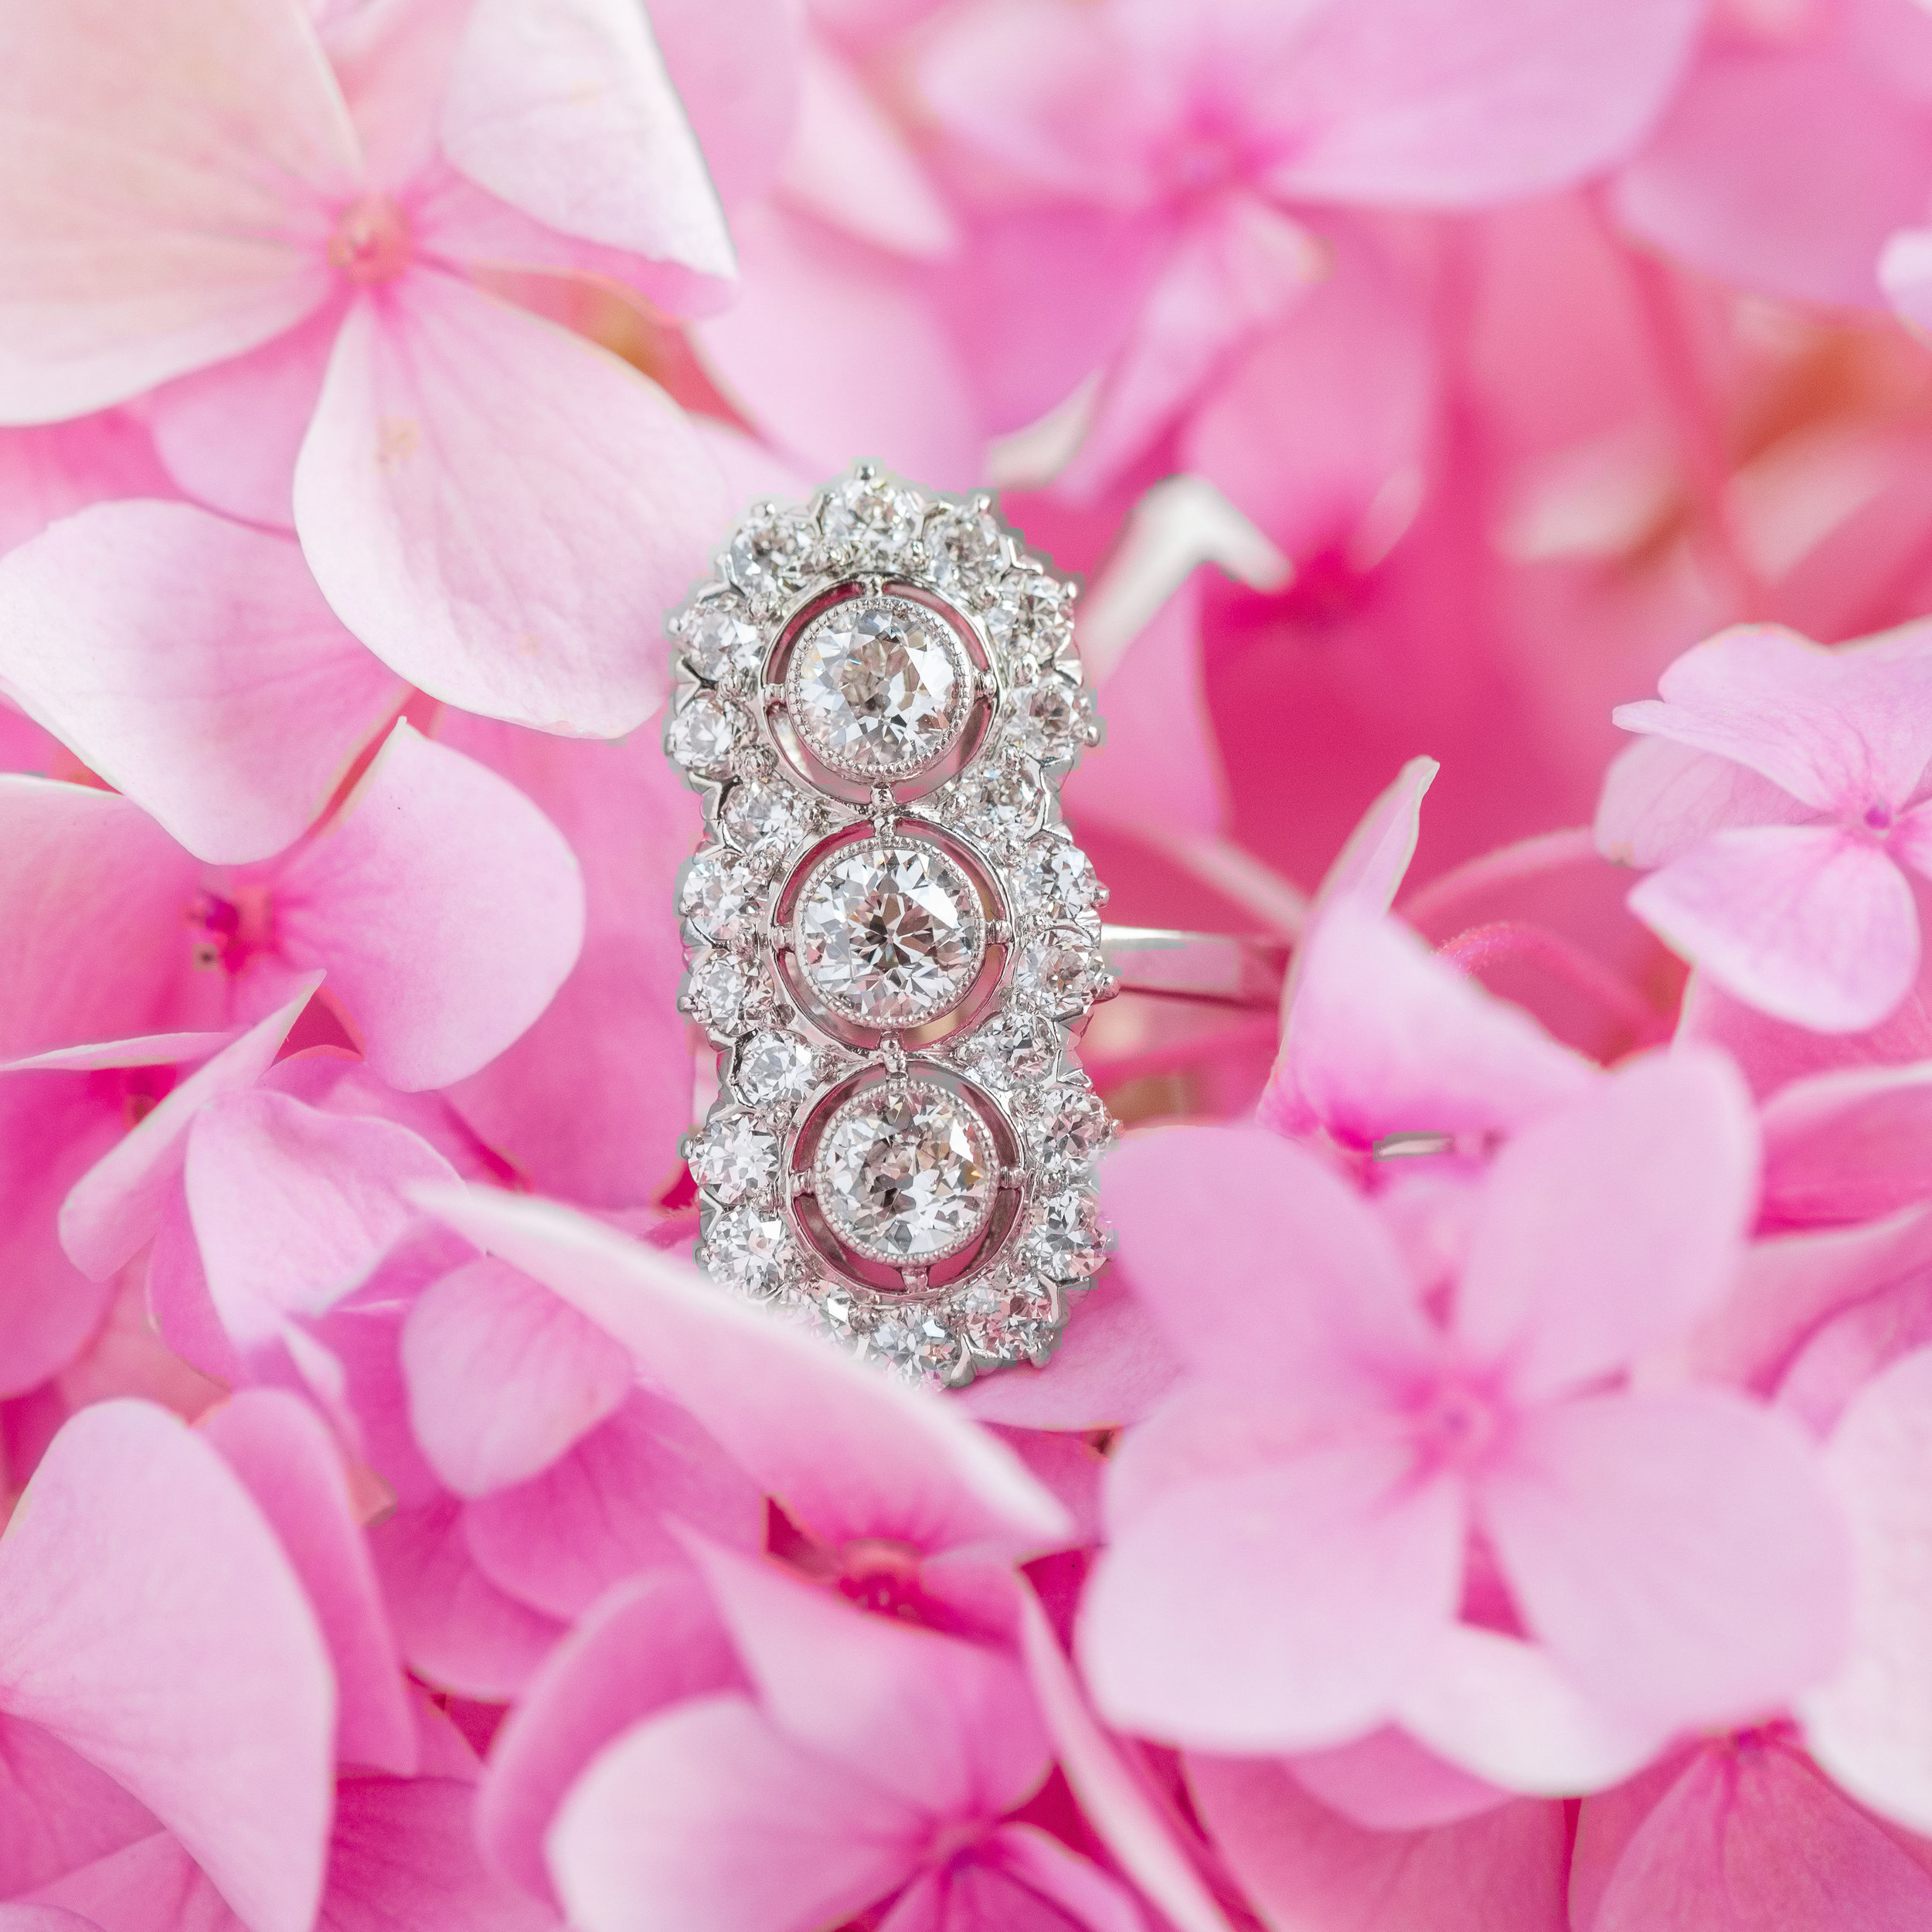 This Art Deco beauty features 1.78 carats of Old European cut diamonds in a light an airy elongated platinum setting. Shop this piece of perfection  HERE .